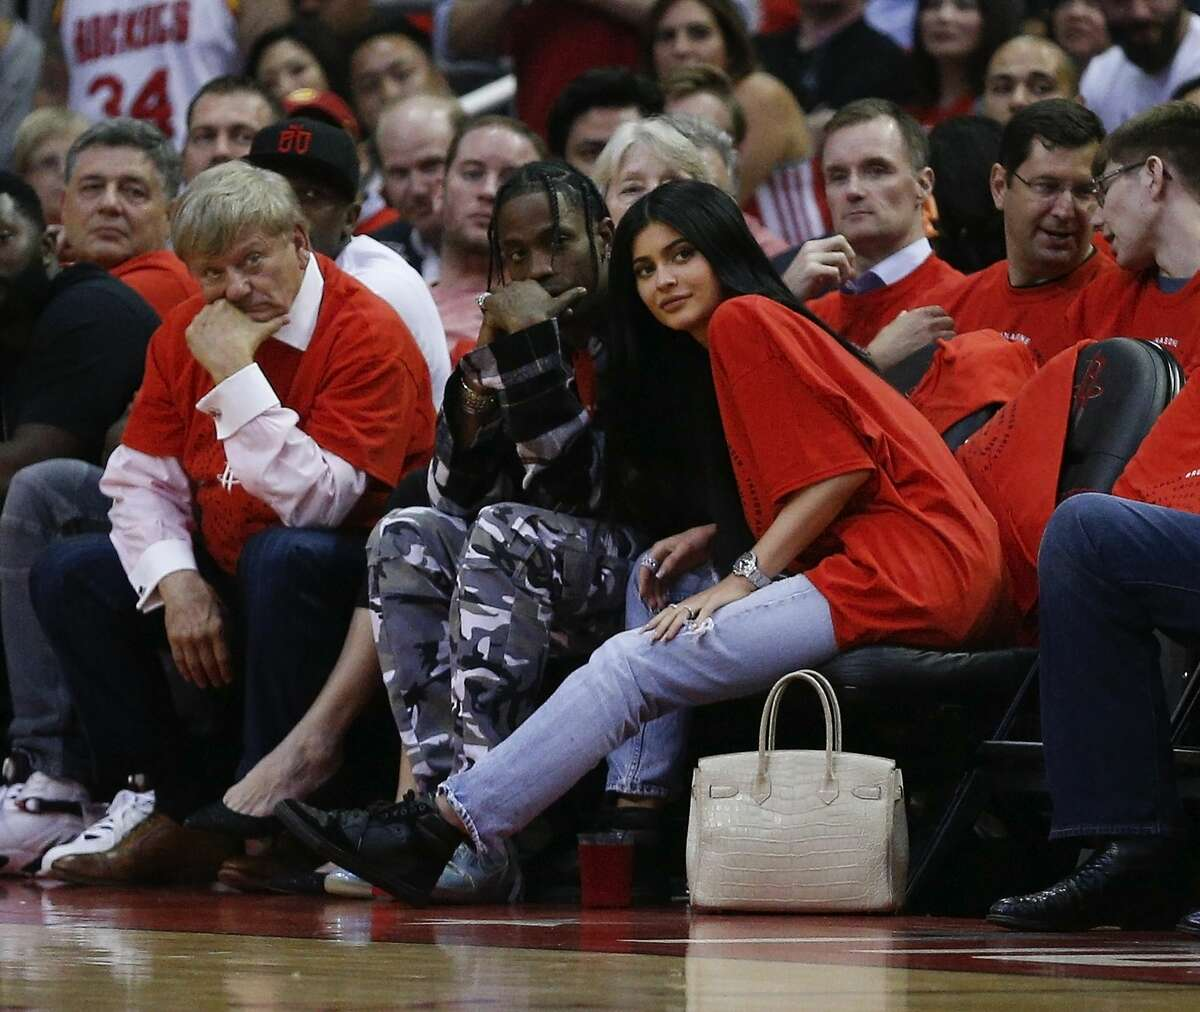 Houston rapper Travis Scott, pictured here with Kylie Jenner, marks Travis Scott's entry into the growing cannabis industry.